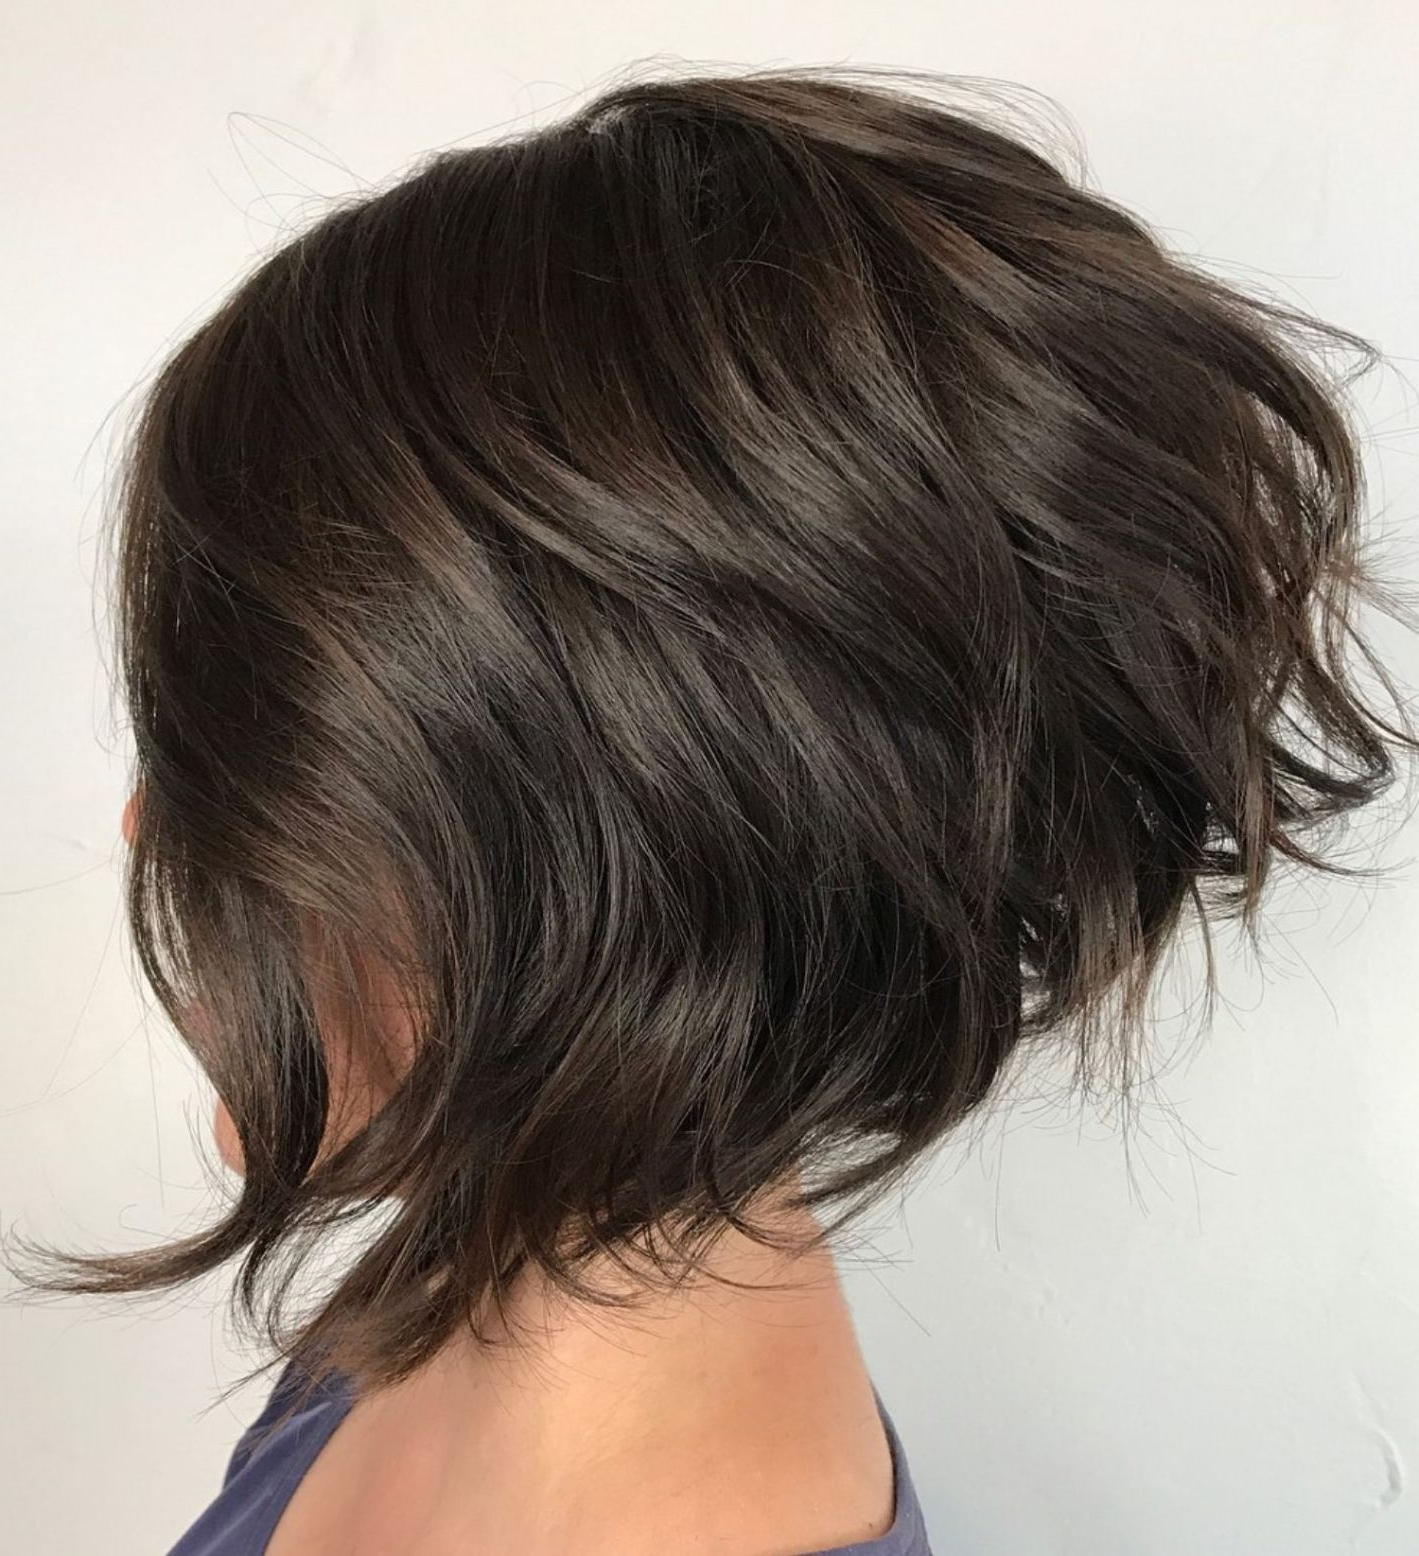 60 Best Short Bob Haircuts And Hairstyles For Women Throughout Voluminous Short Bob Haircuts (View 4 of 20)